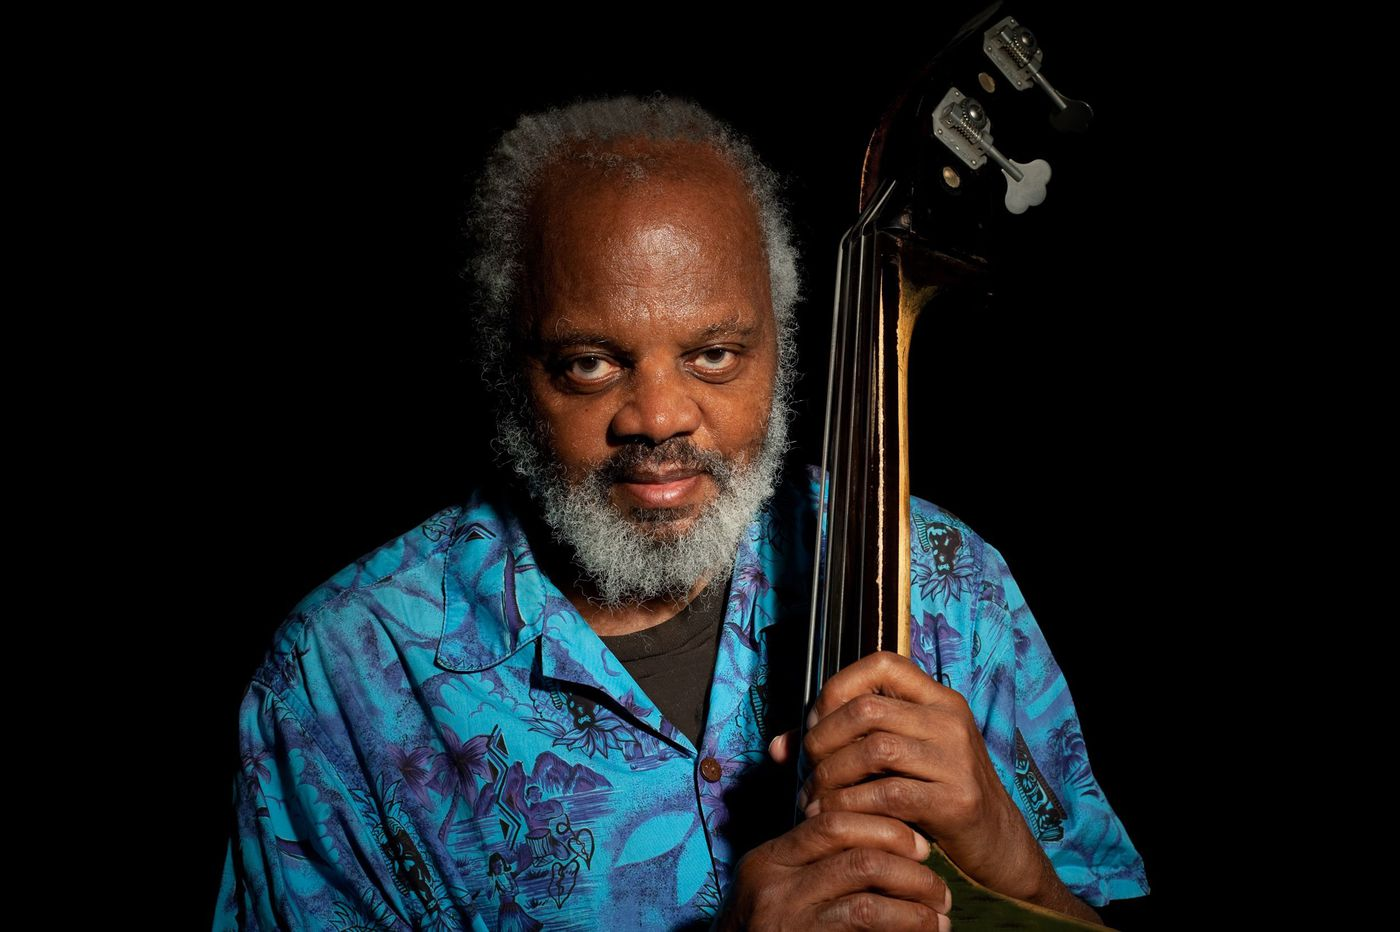 Henry Grimes, 84, bassist who played with jazz greats